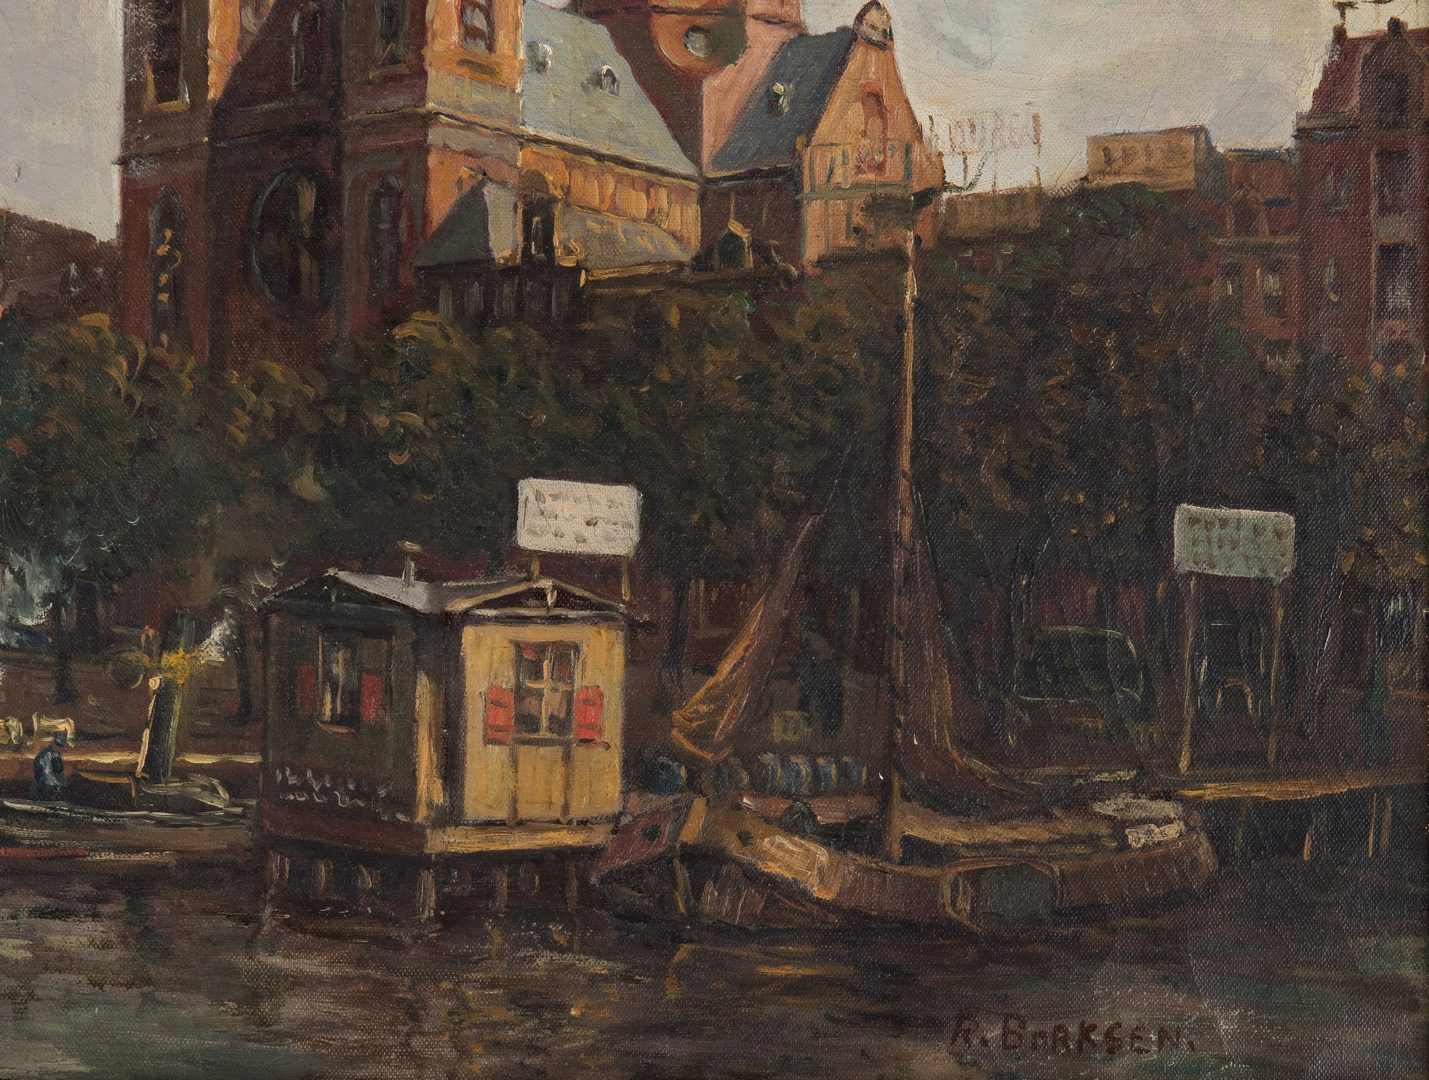 Lot 64: Amsterdam canal scene, O/C, signed Borksen